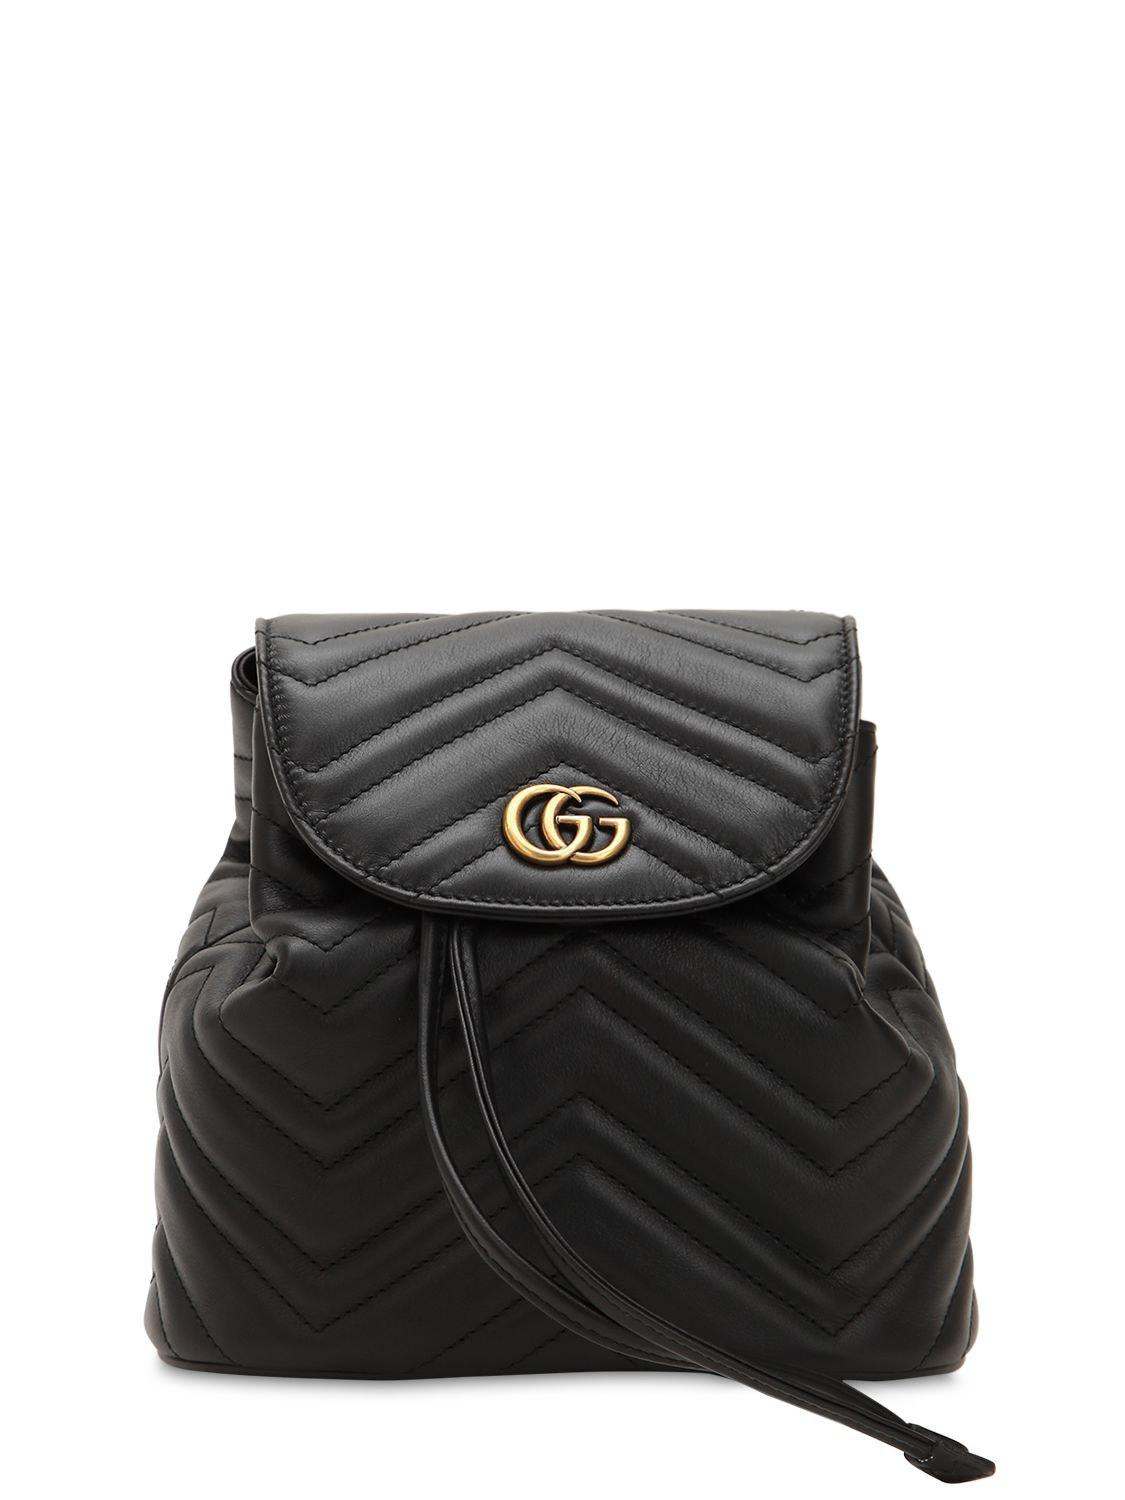 Lyst - Gucci Mini Gg Marmont Leather Backpack in Black - Save 7% bea34c023fed6